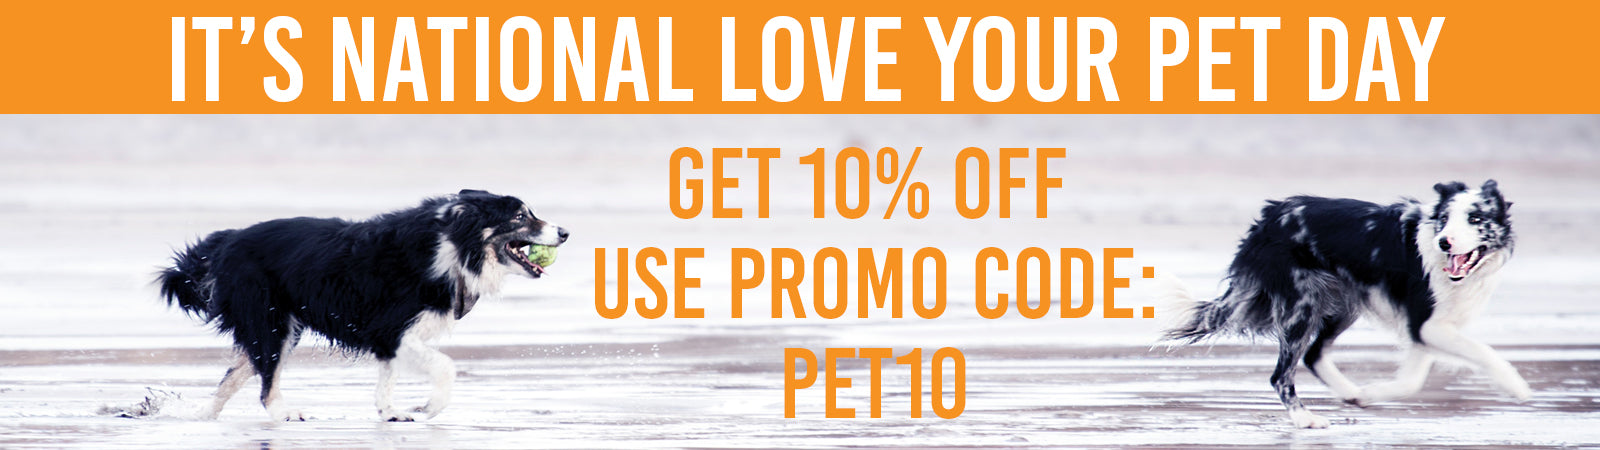 10% Off Use Code PET10